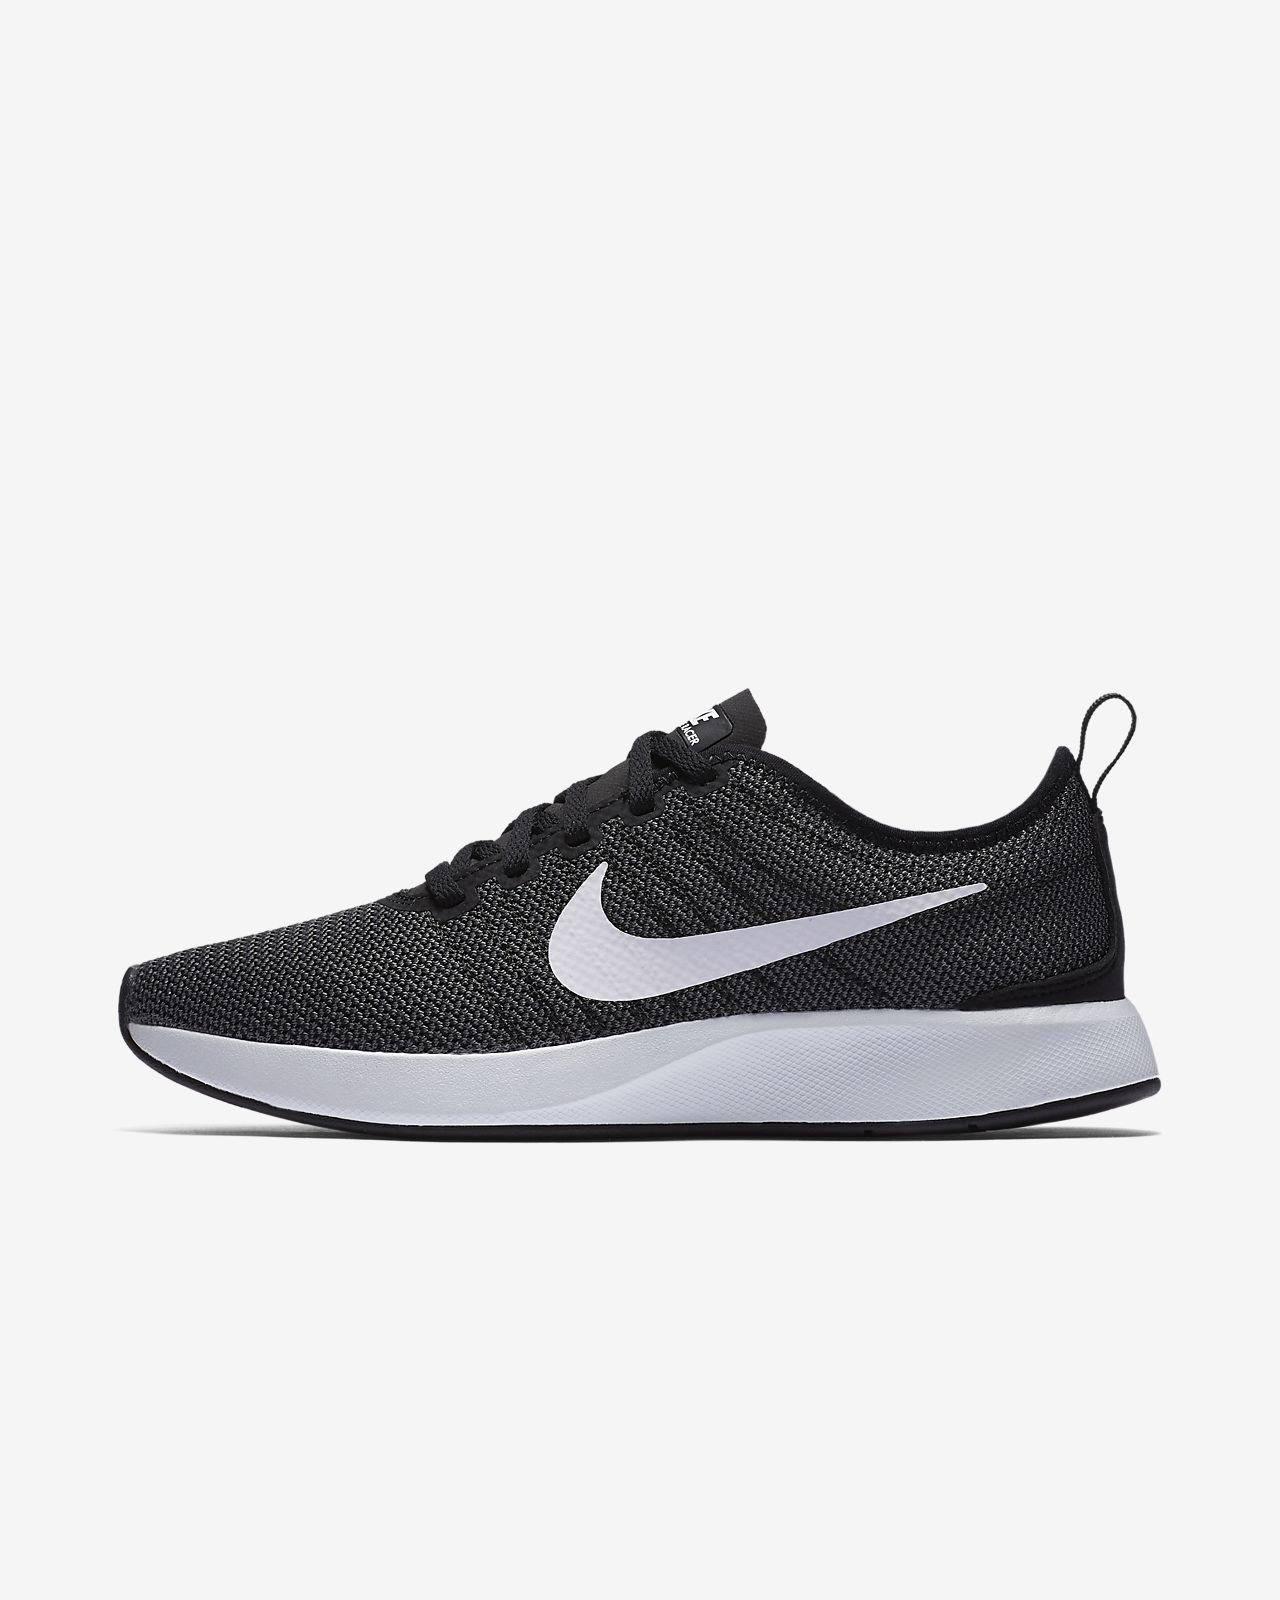 Toddler Breathable Shoes Nike